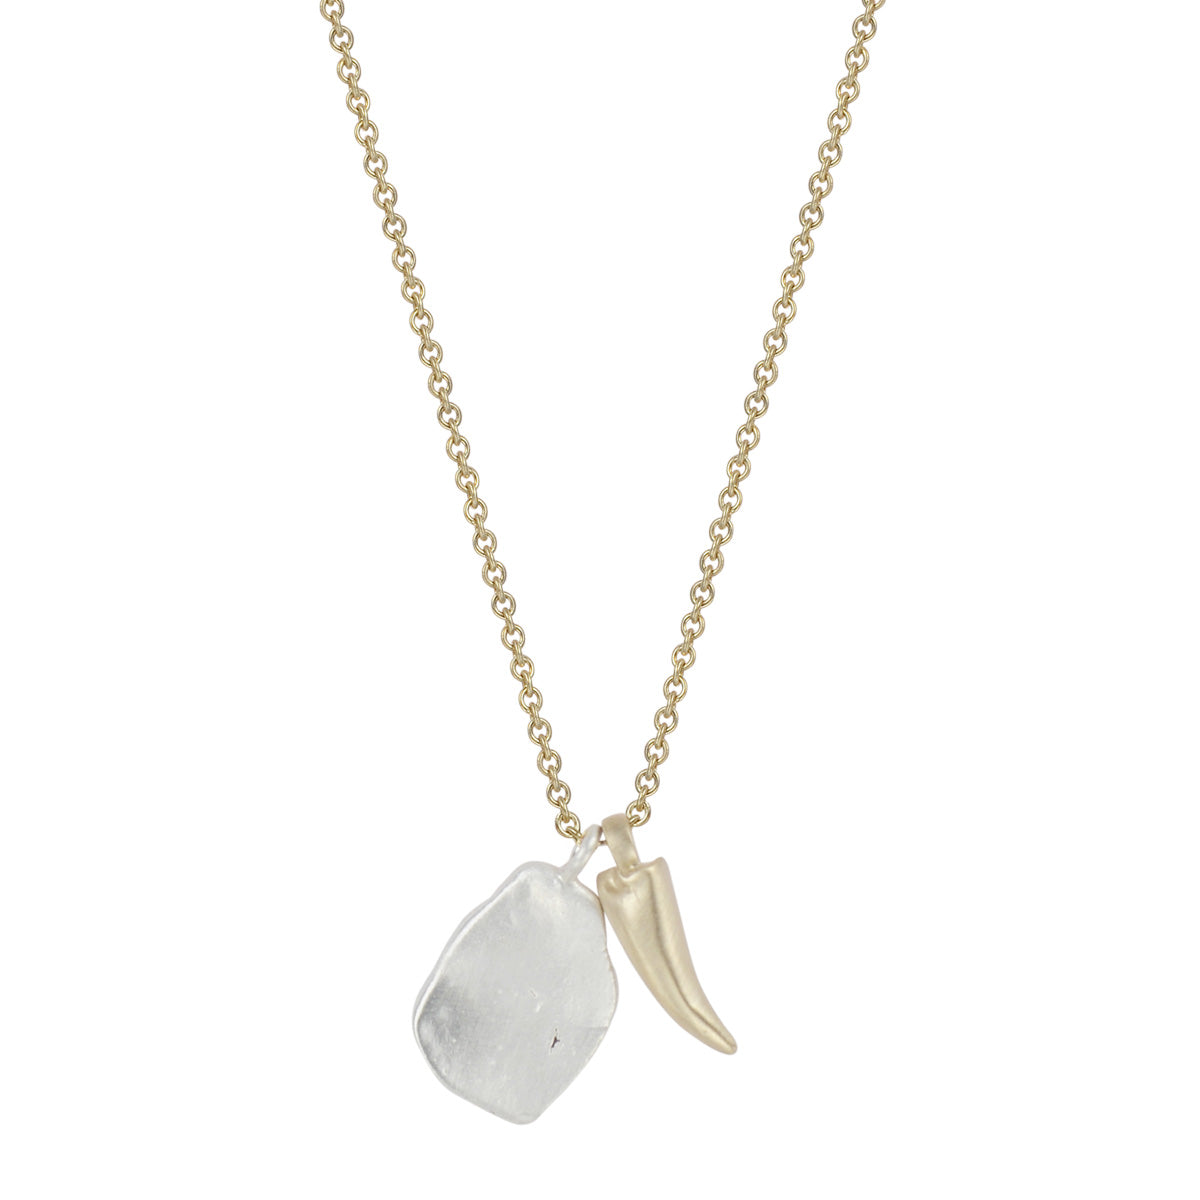 10K Gold Lobster Claw and Silver Shell Charm on Chain